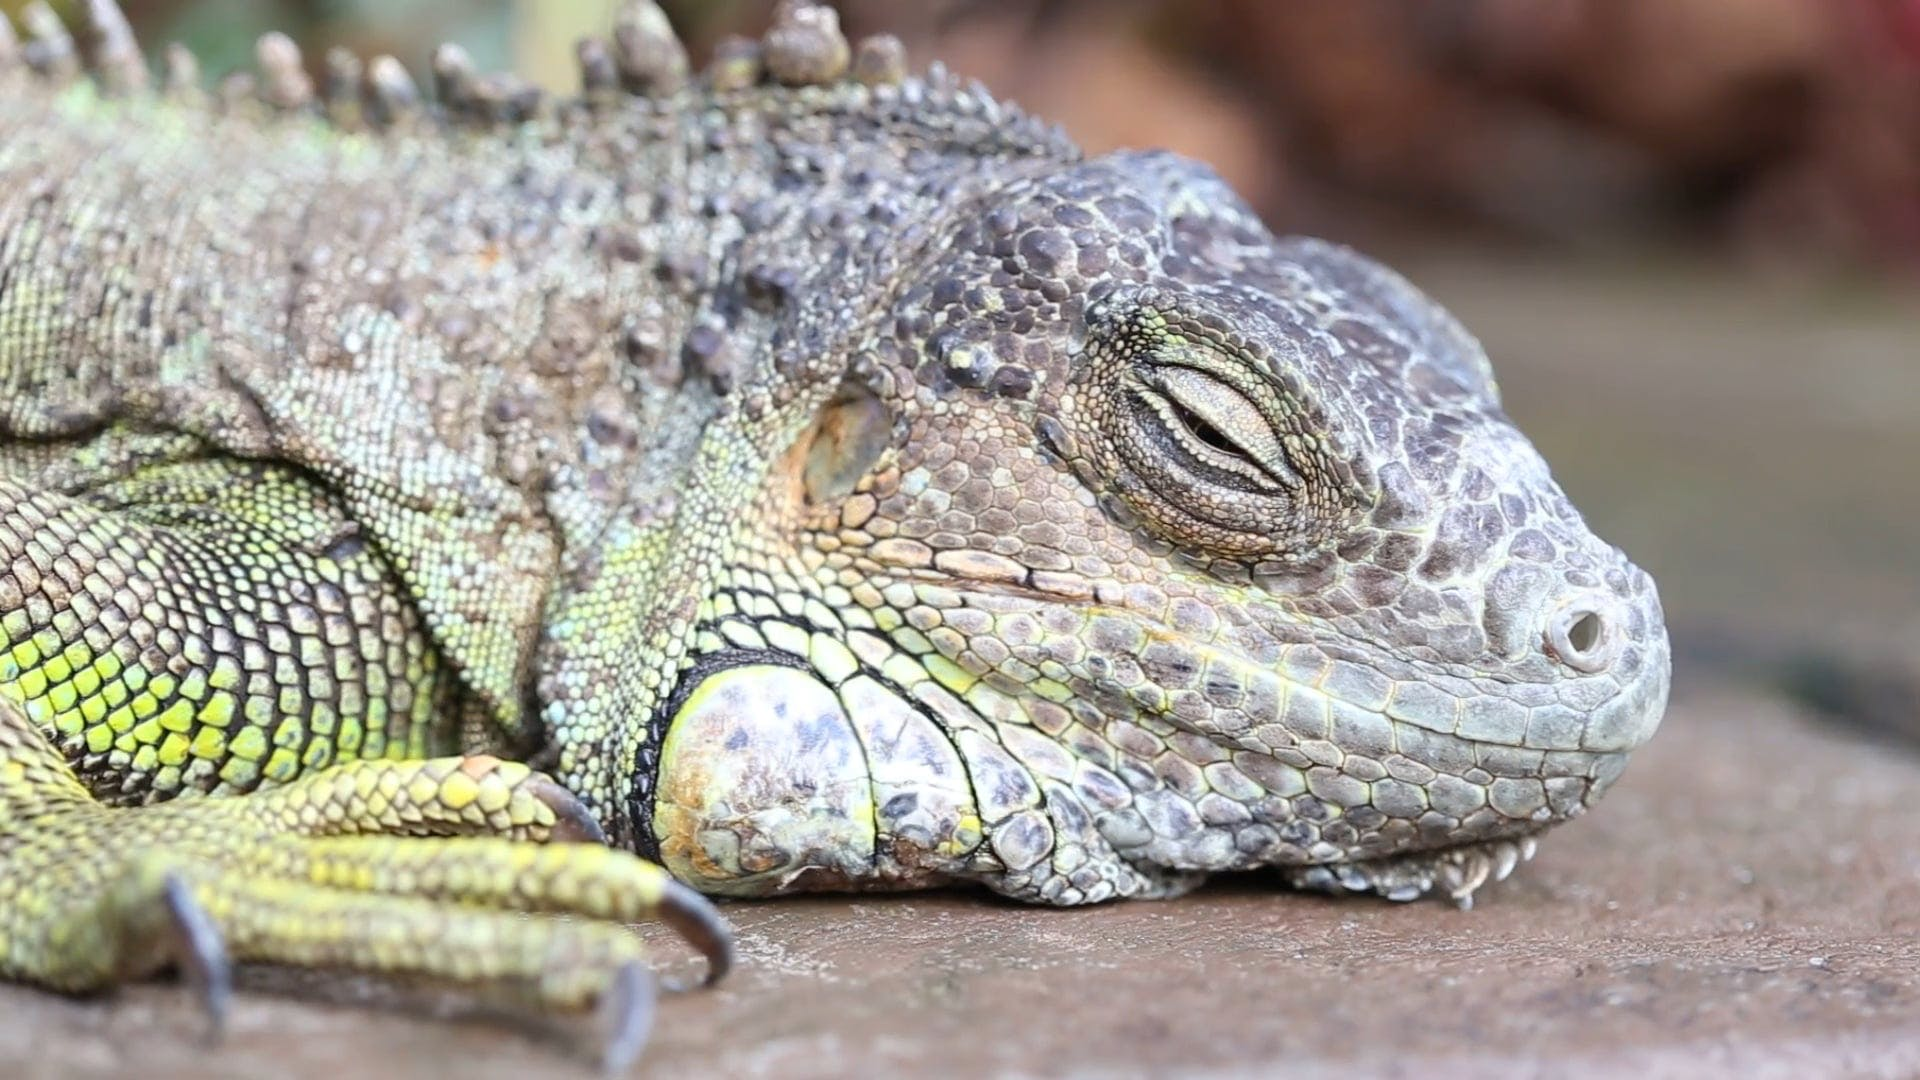 Close Up Video Of A Reptile